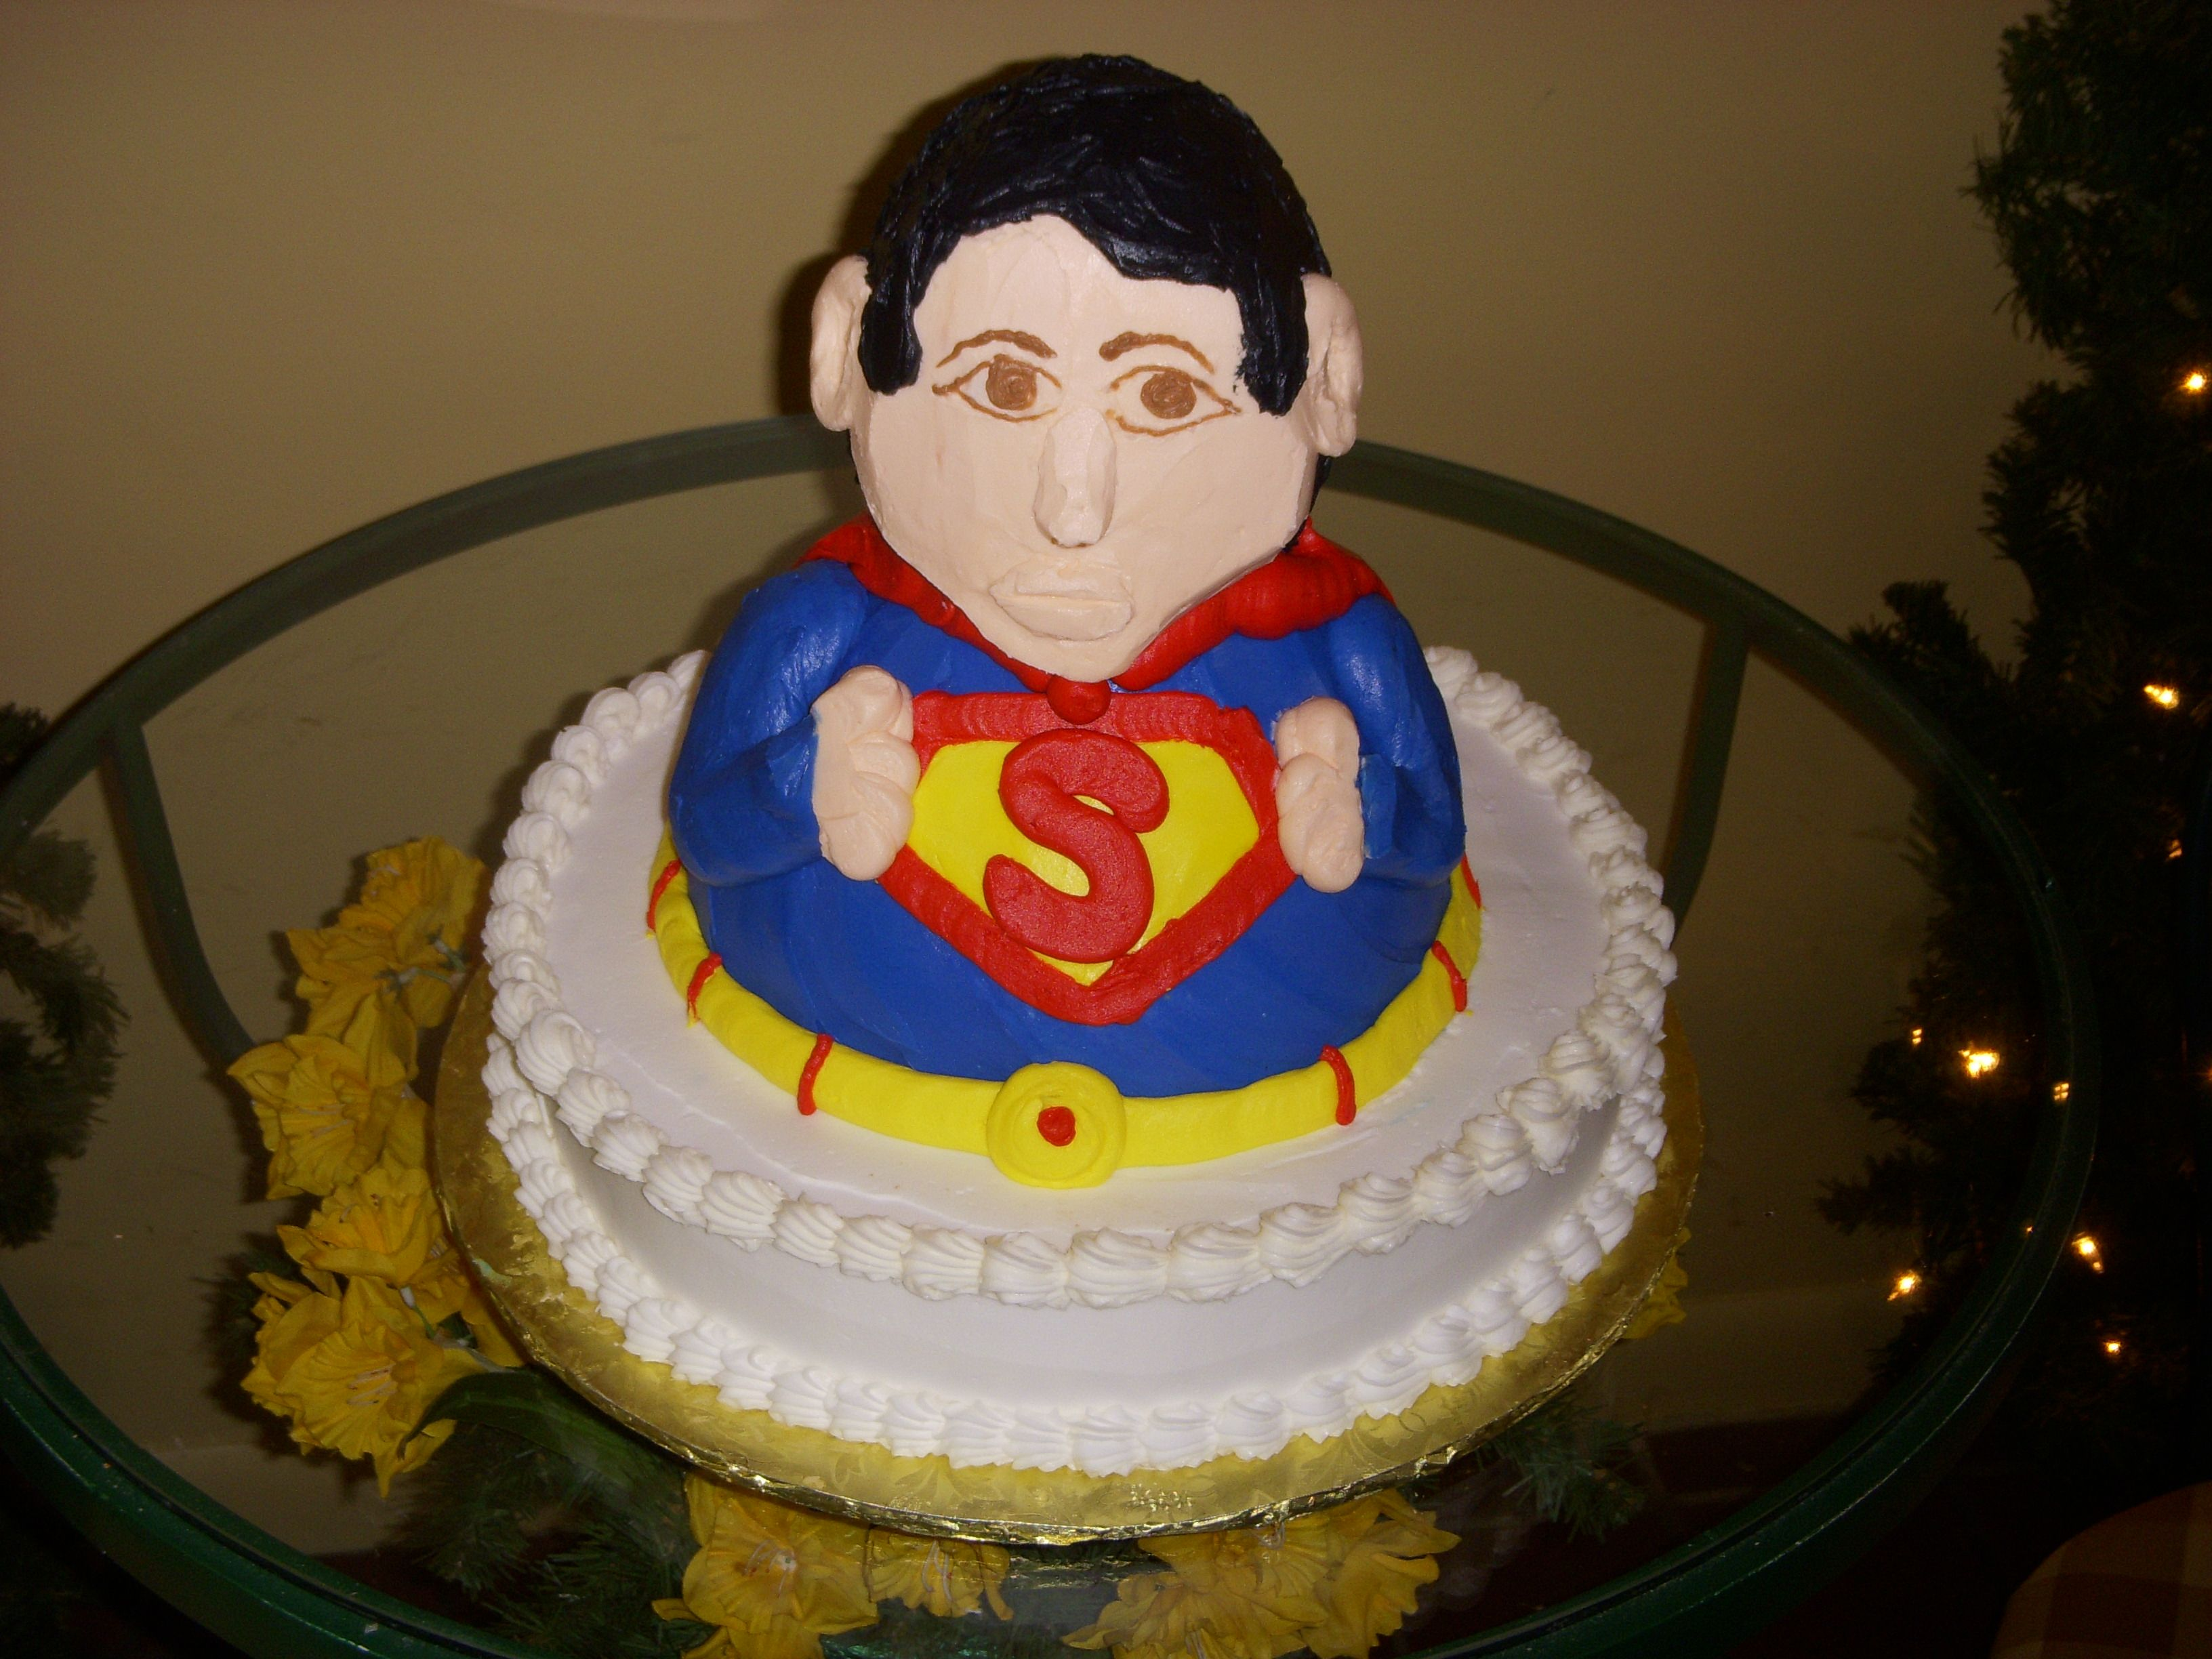 Superman Cake, specialty cake, groom's cake, birthday cake, http://tiered-expressions.com